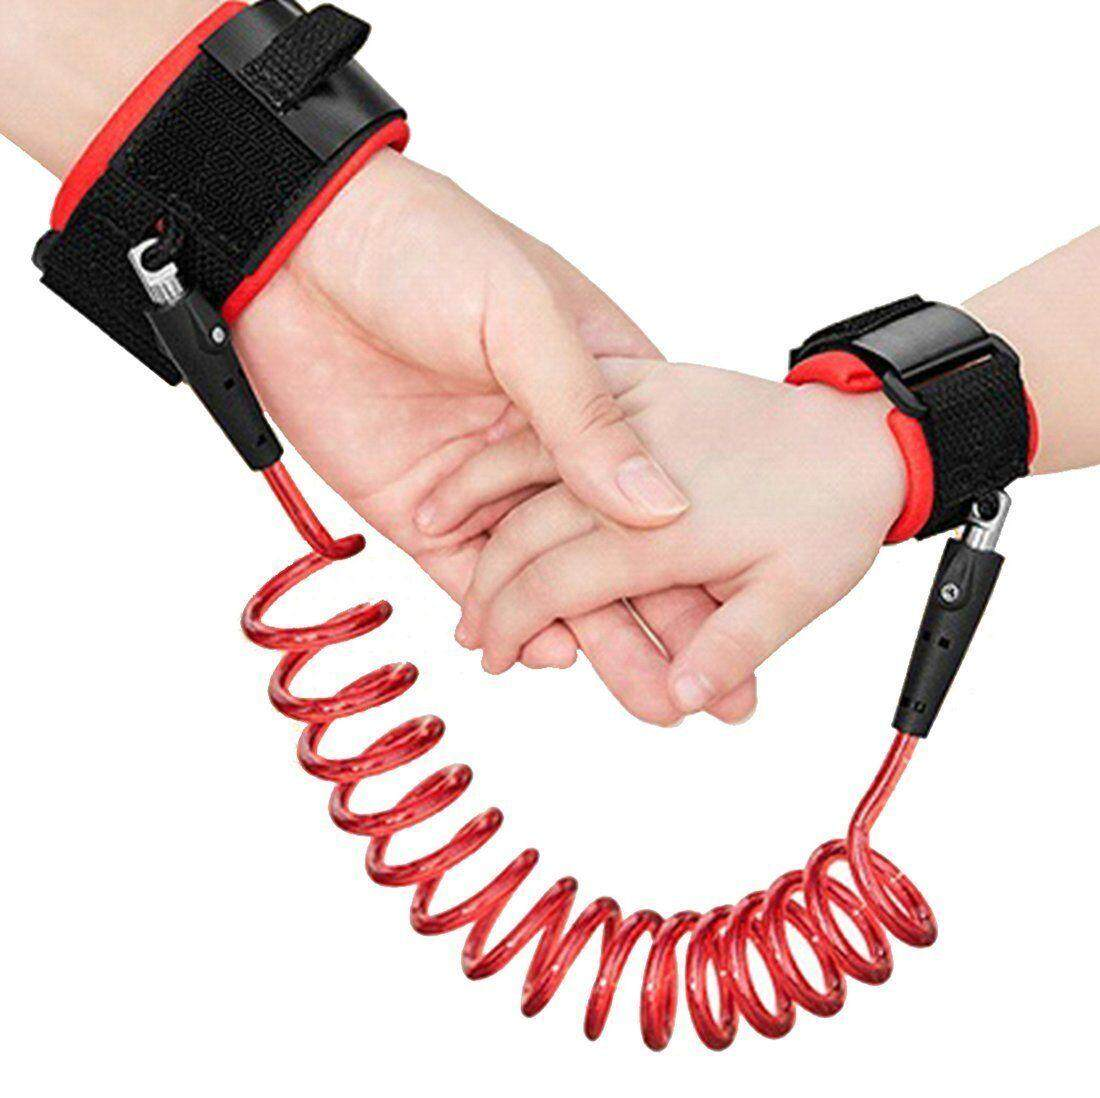 1.5M Adjustable Kids Safety Anti-lost Wrist Band Toddler Harness Leash Strap